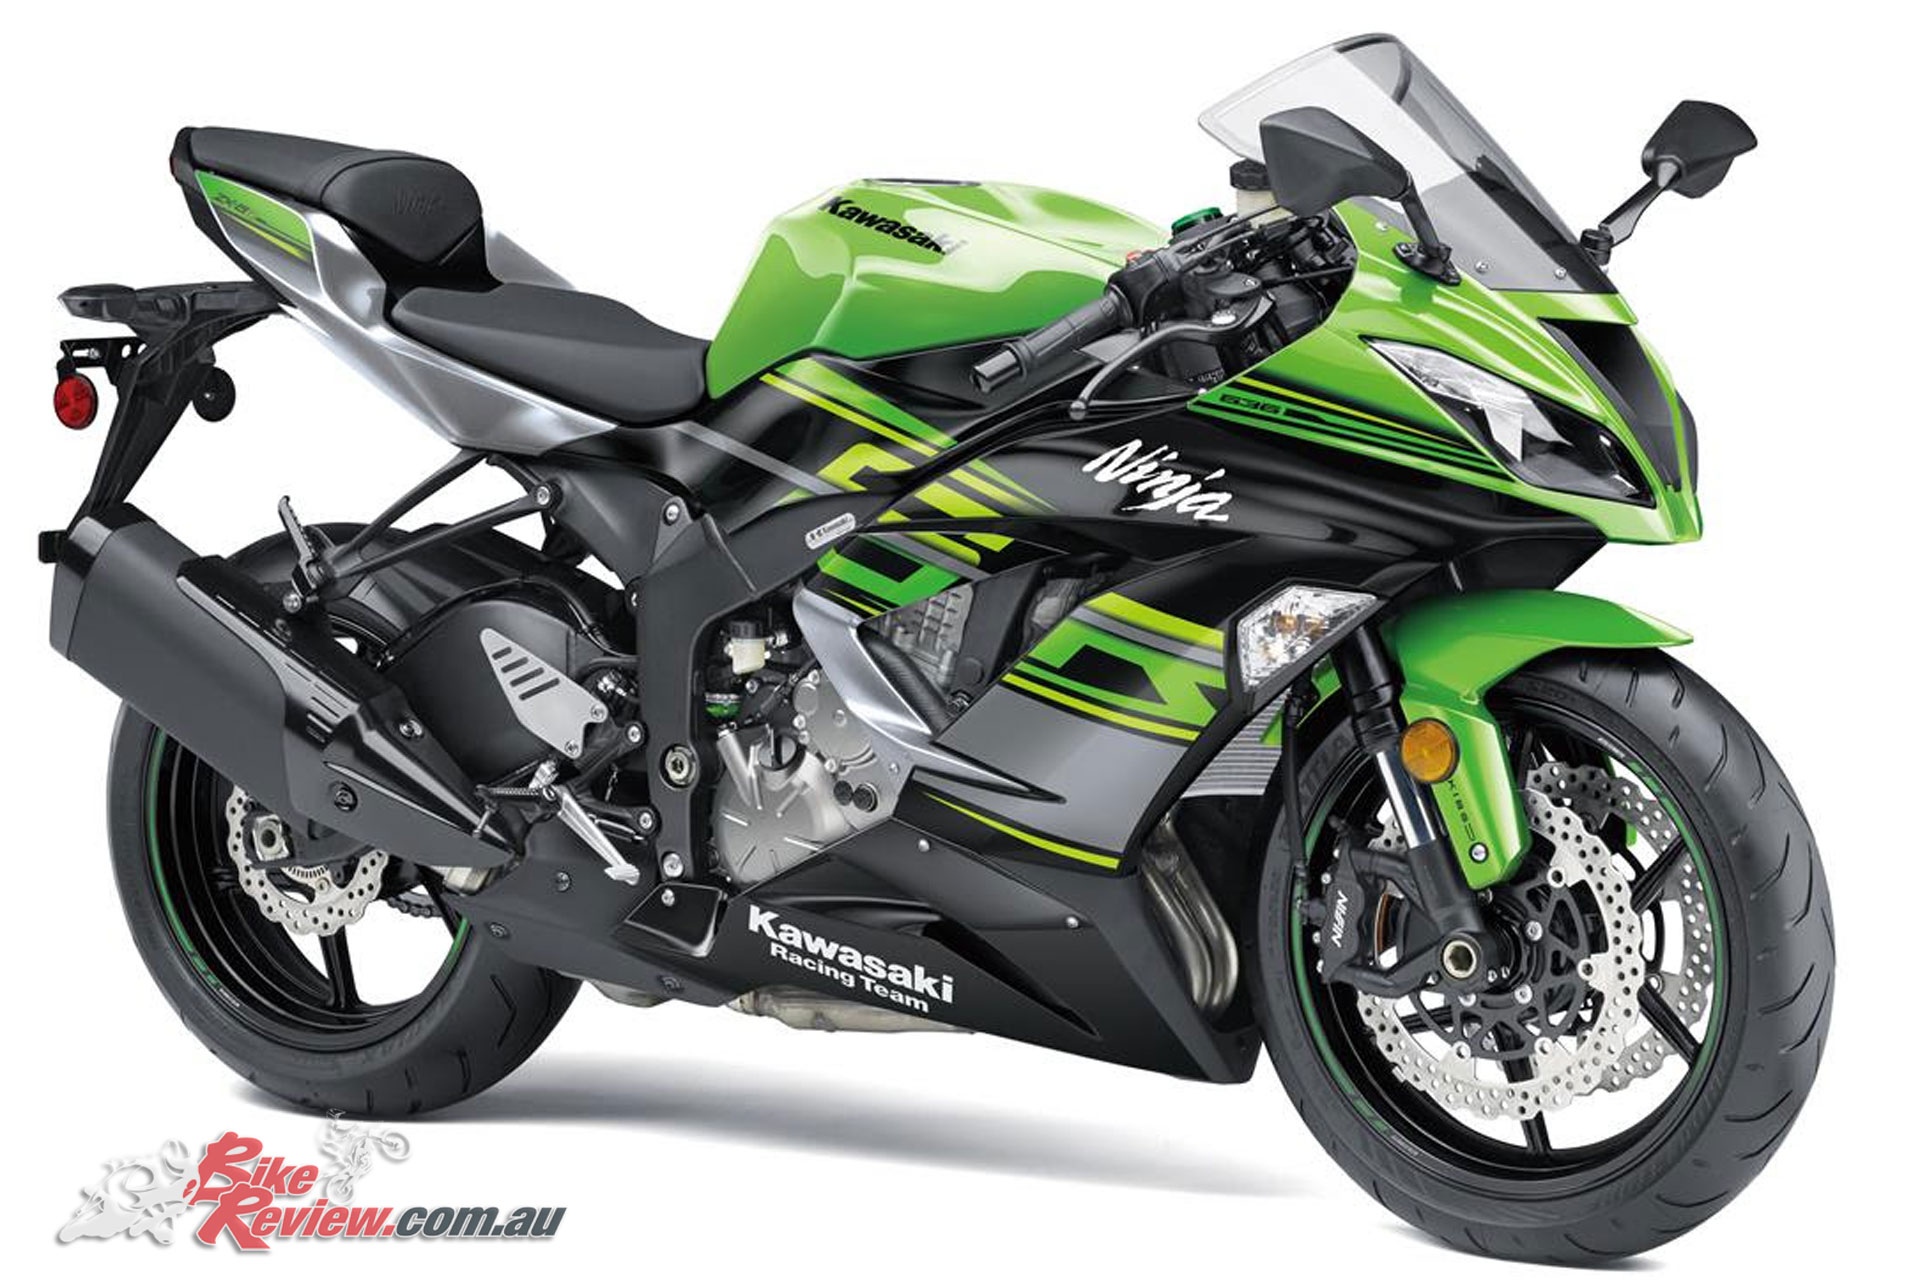 2018 Kawasaki ZX-6R 636 price drop from Oct 31!